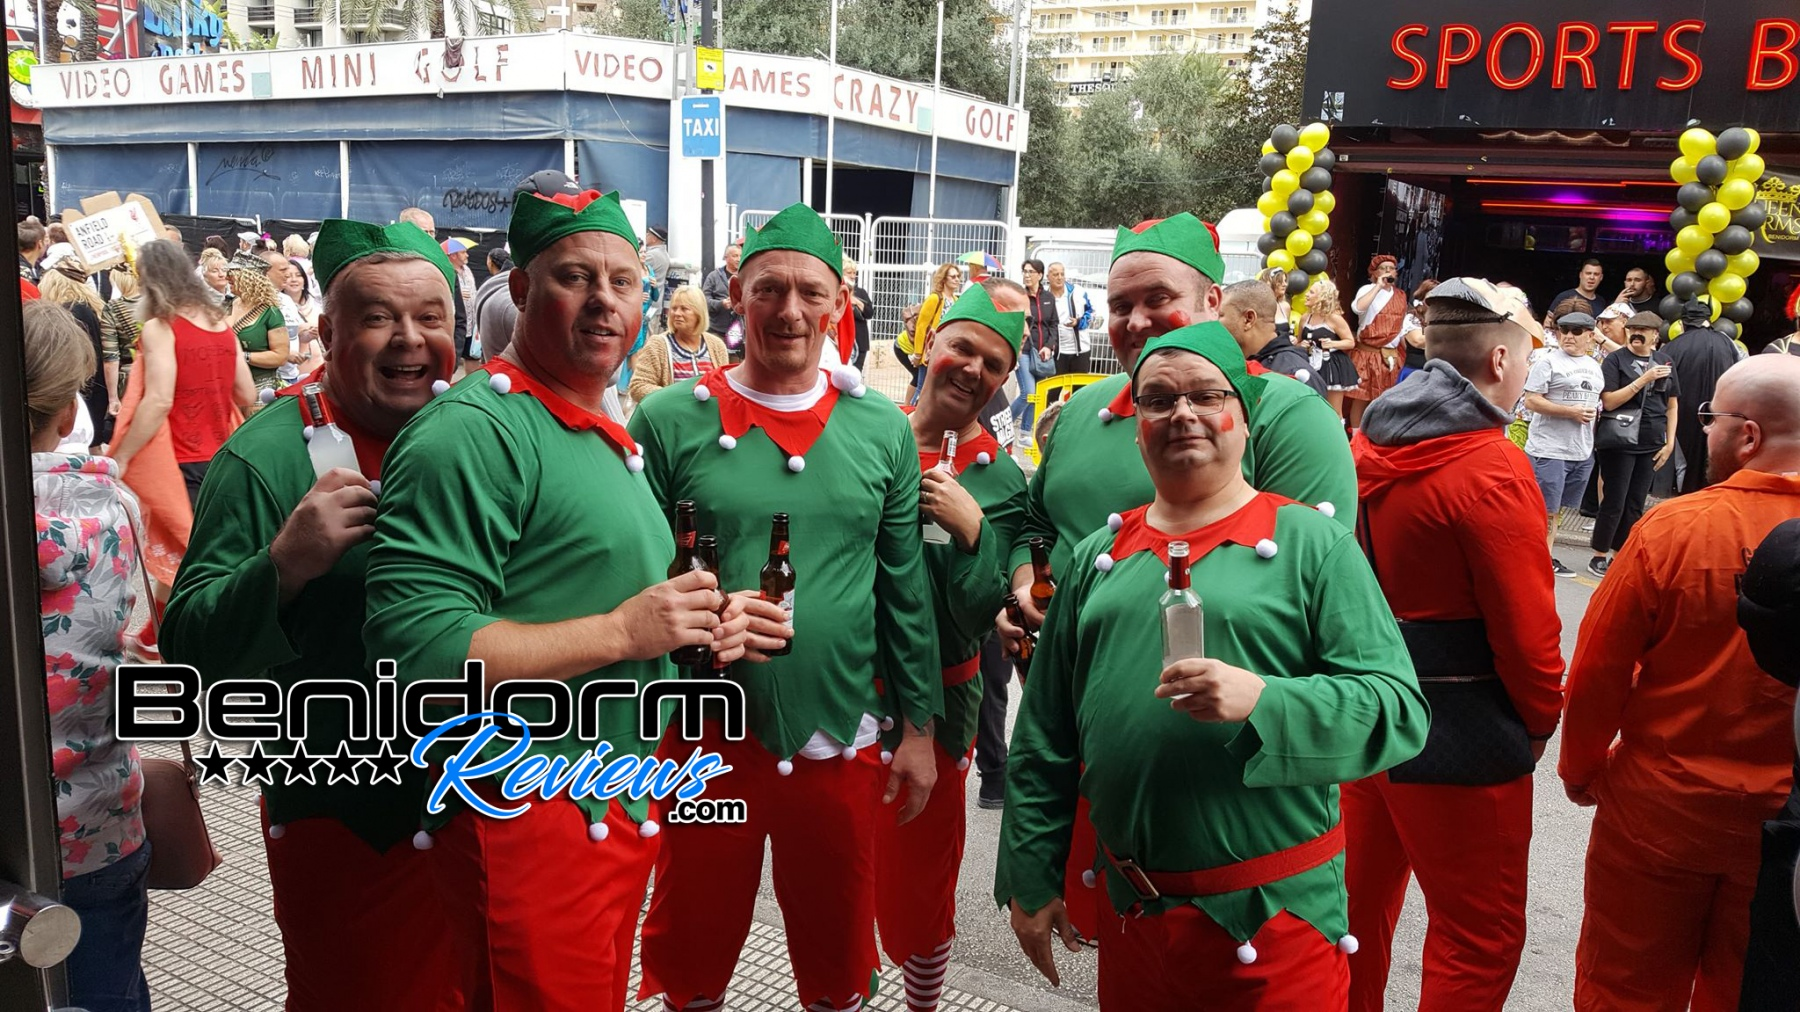 Benidorm-Fiestas-2019-Fancy-Dress-247